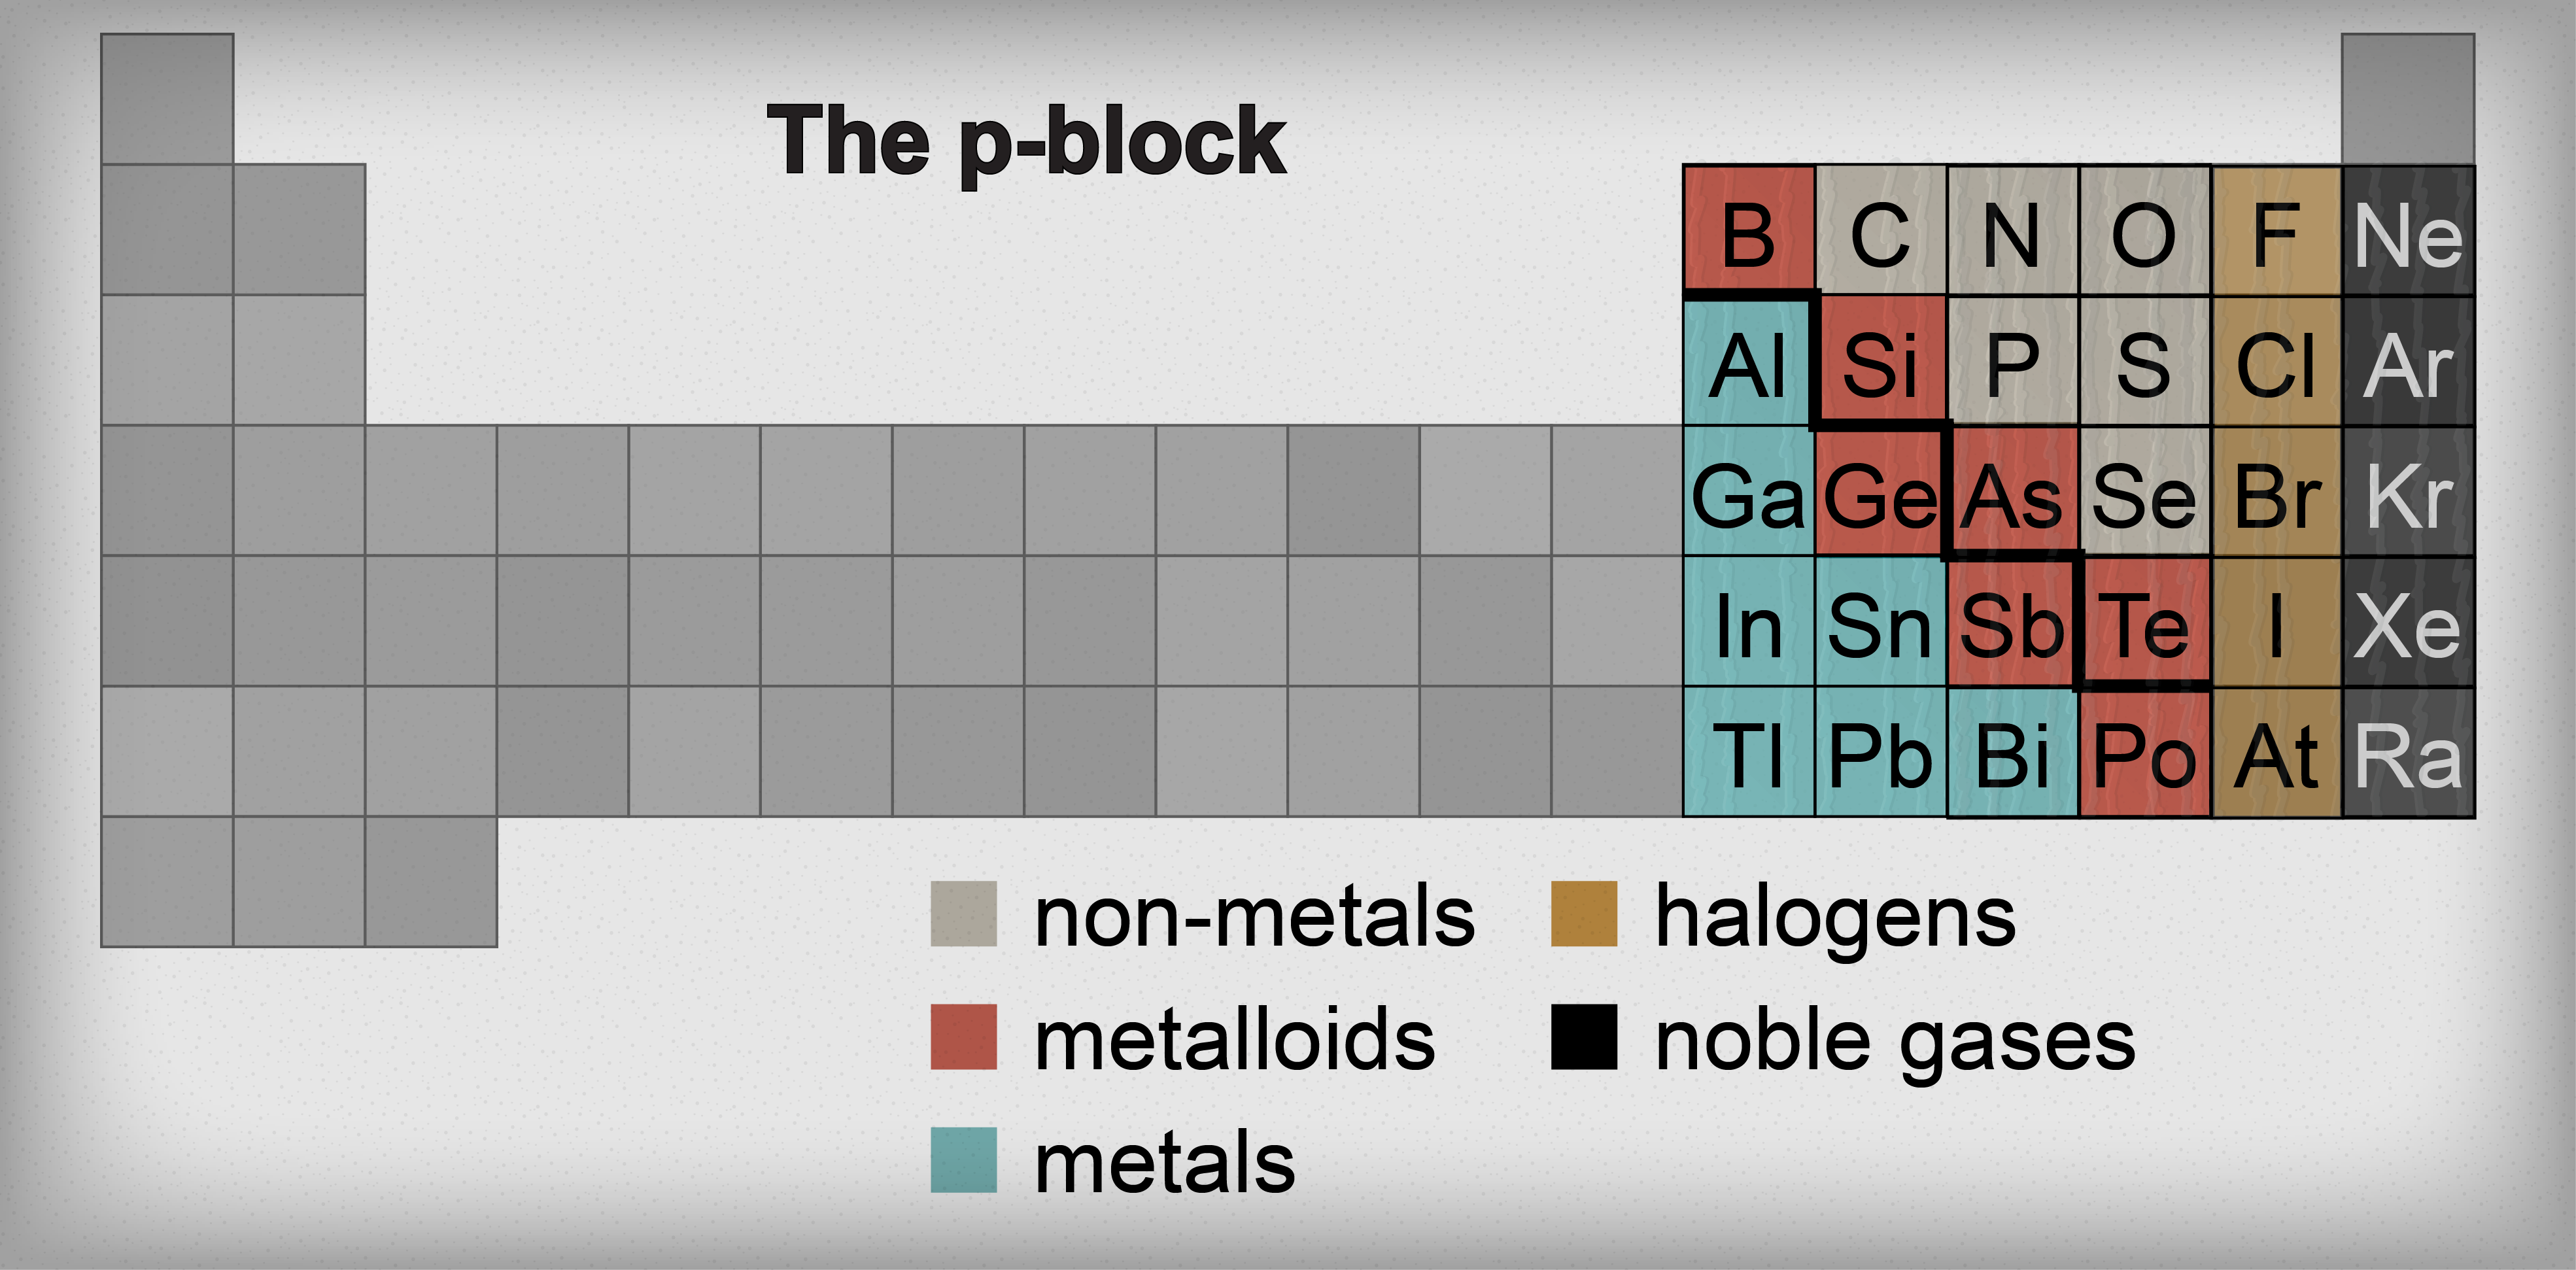 Chemistry metals metalloids and non metals shmoop chemistry in this section dividing elements into columns is so 2000 and late instead the p block is split into metals metalloids and non metals urtaz Gallery